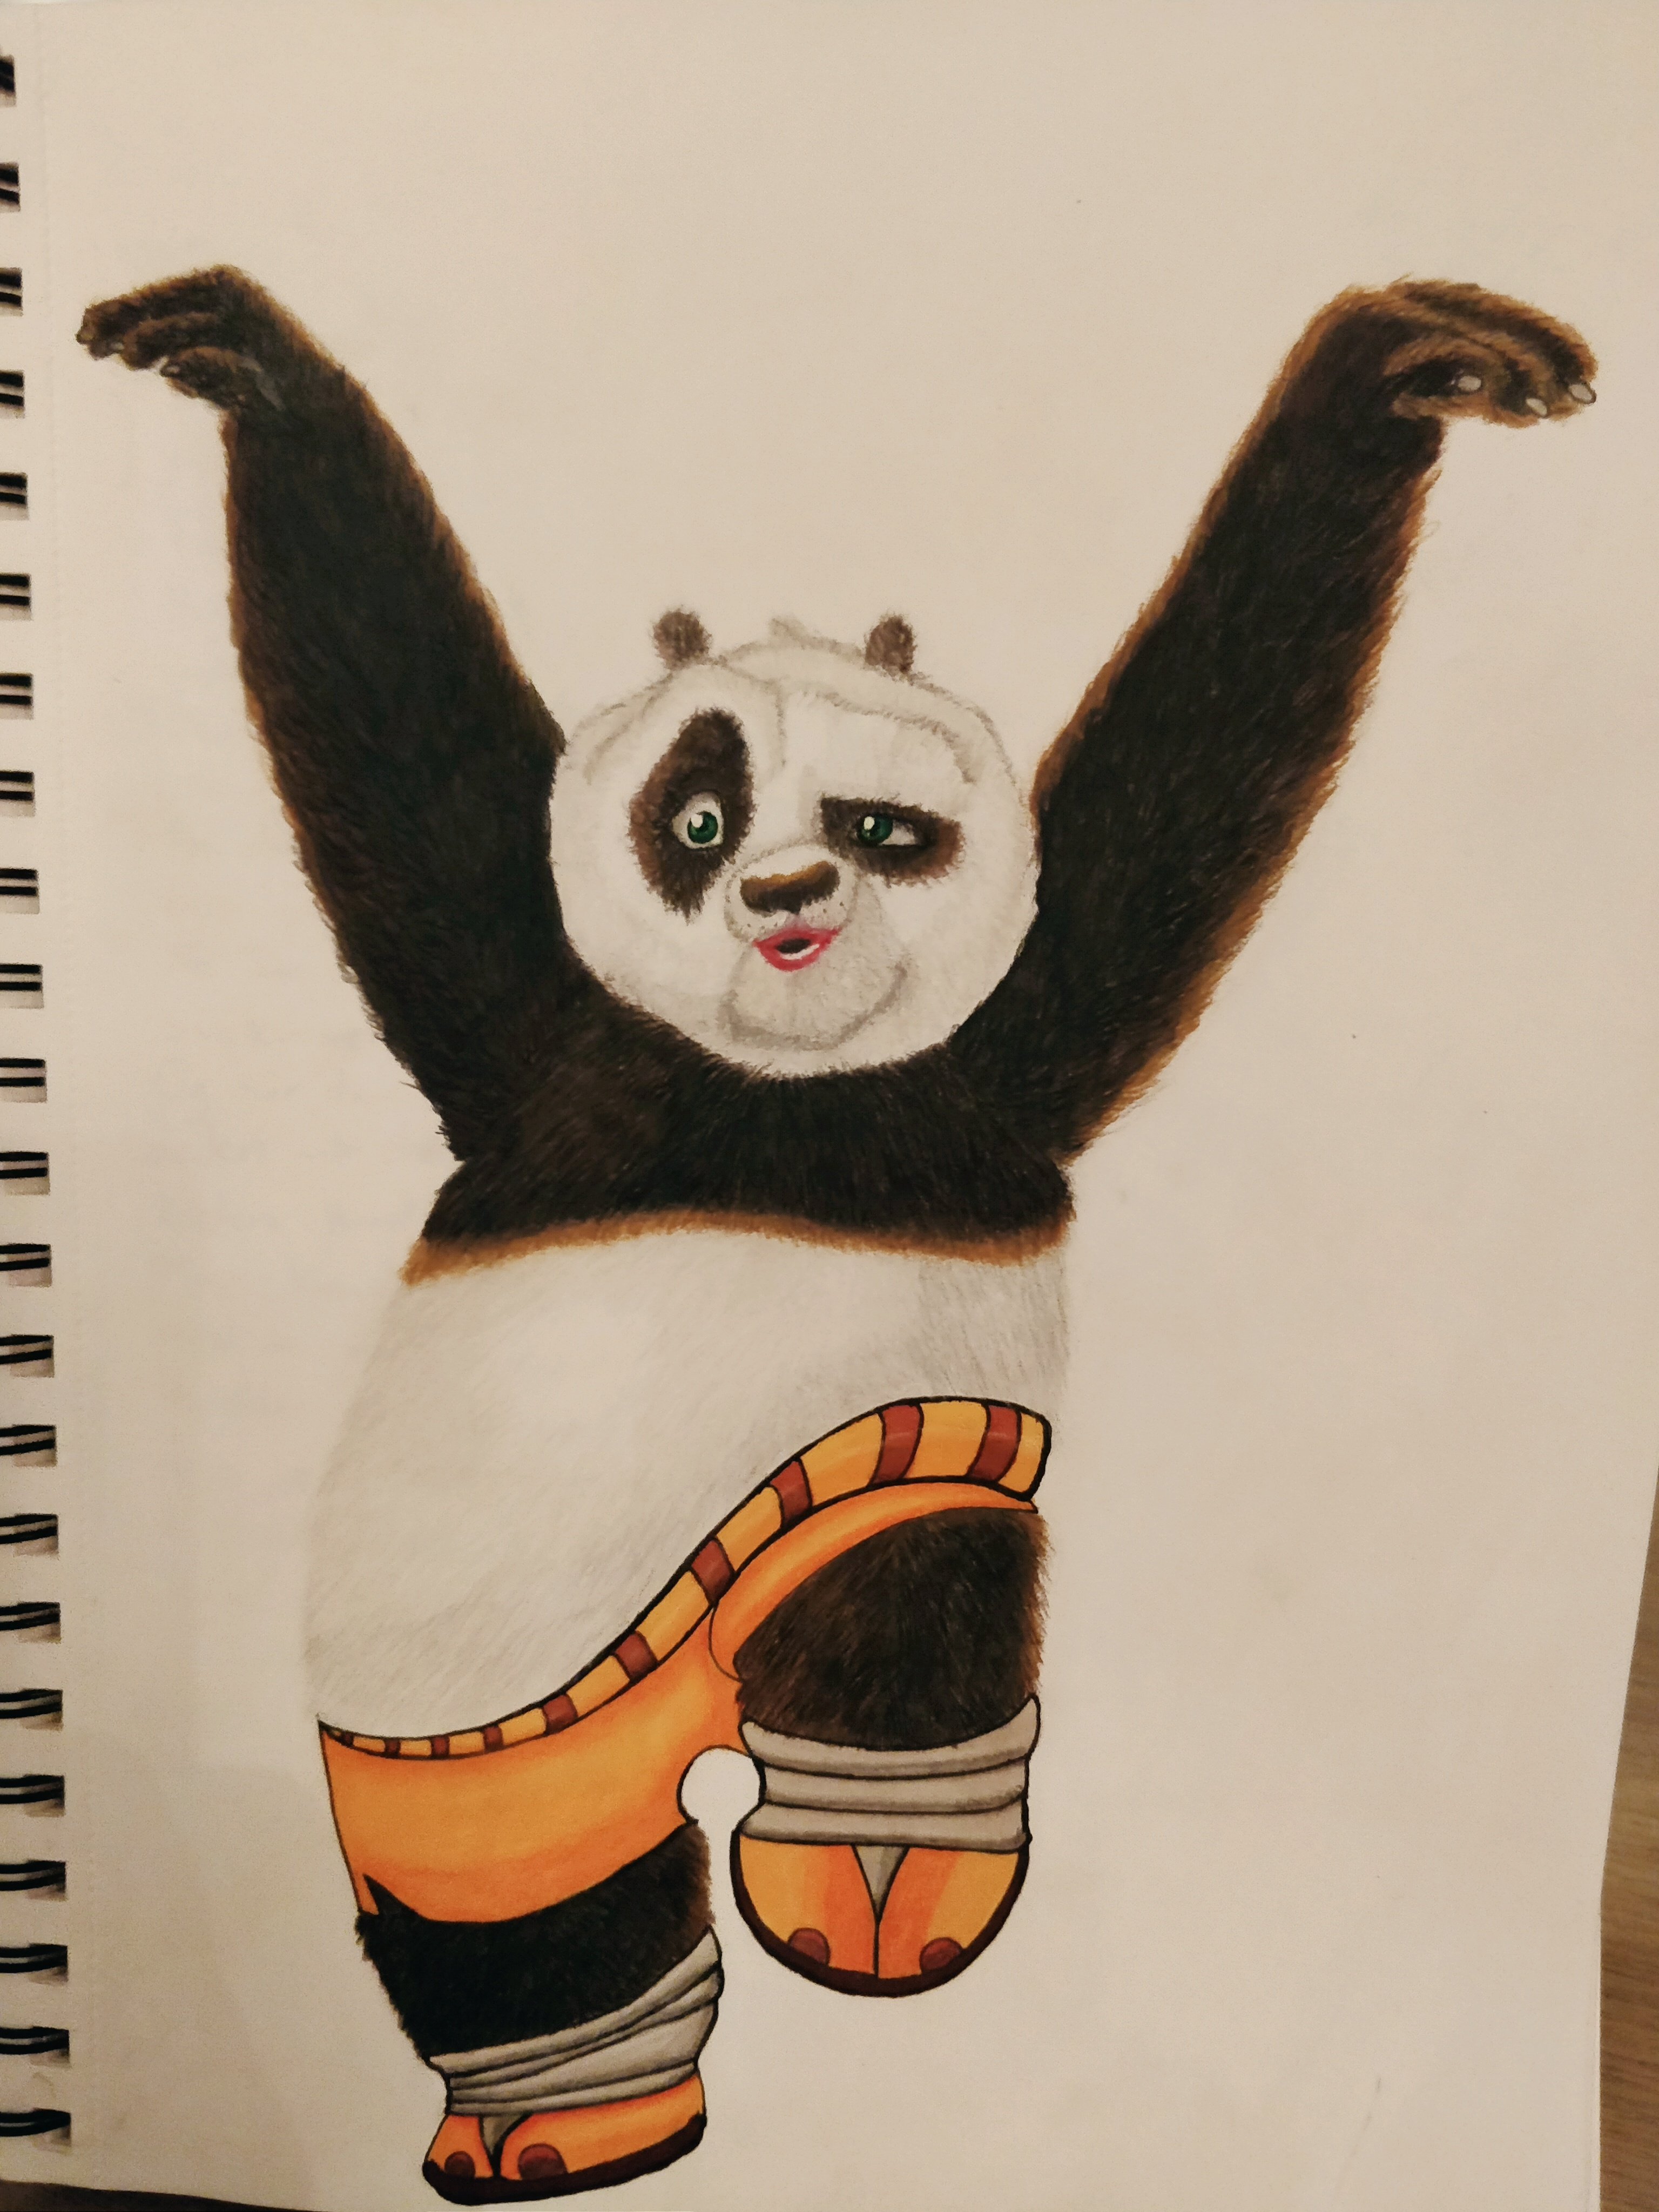 Kung Fu Panda 4 Trailer to premiere soon? Heres what the